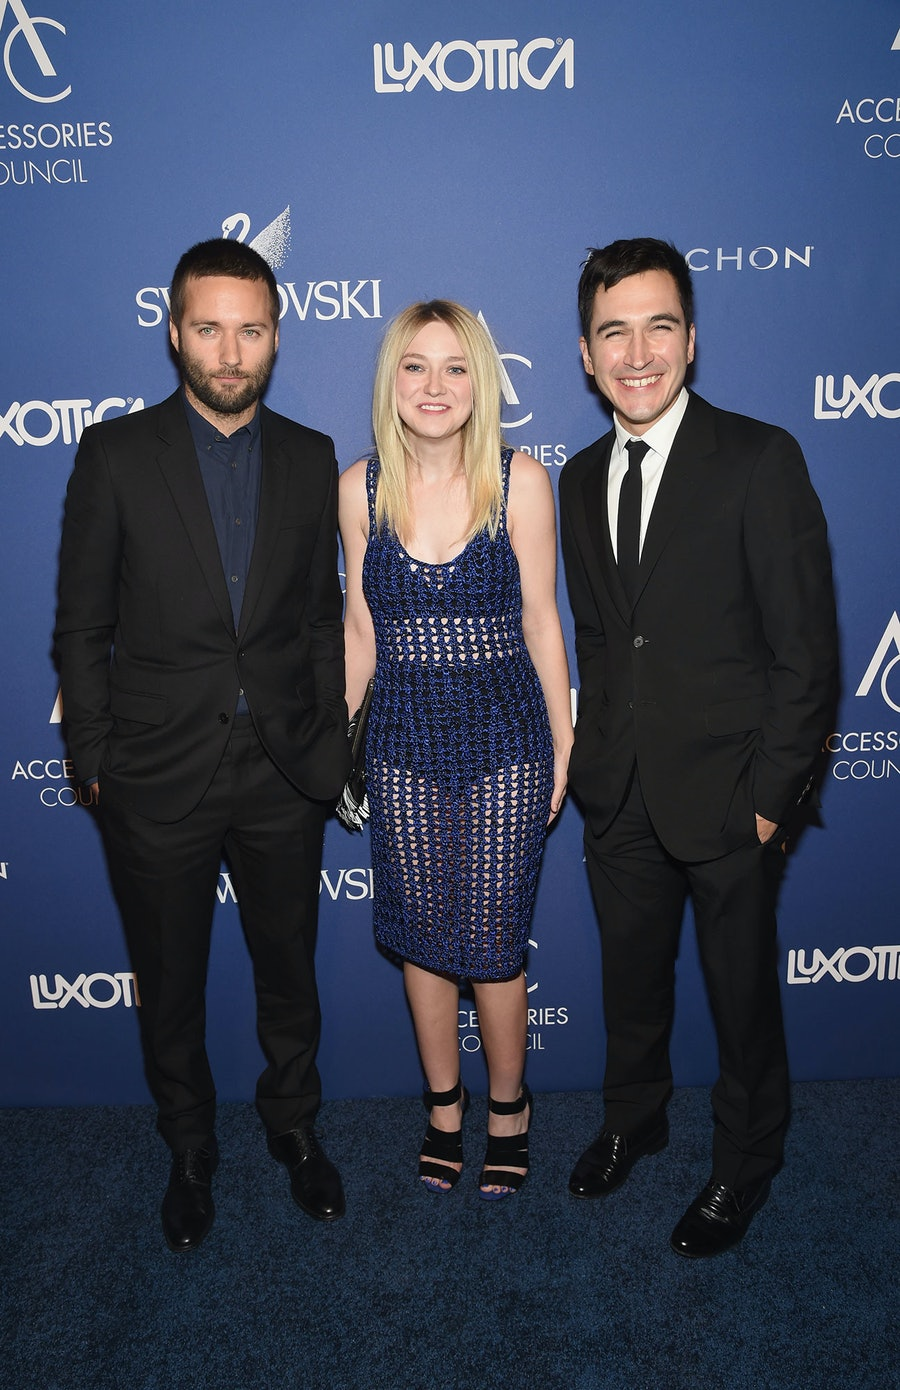 Jack McCollough, Dakota Fanning, and Lazaro Hernandez